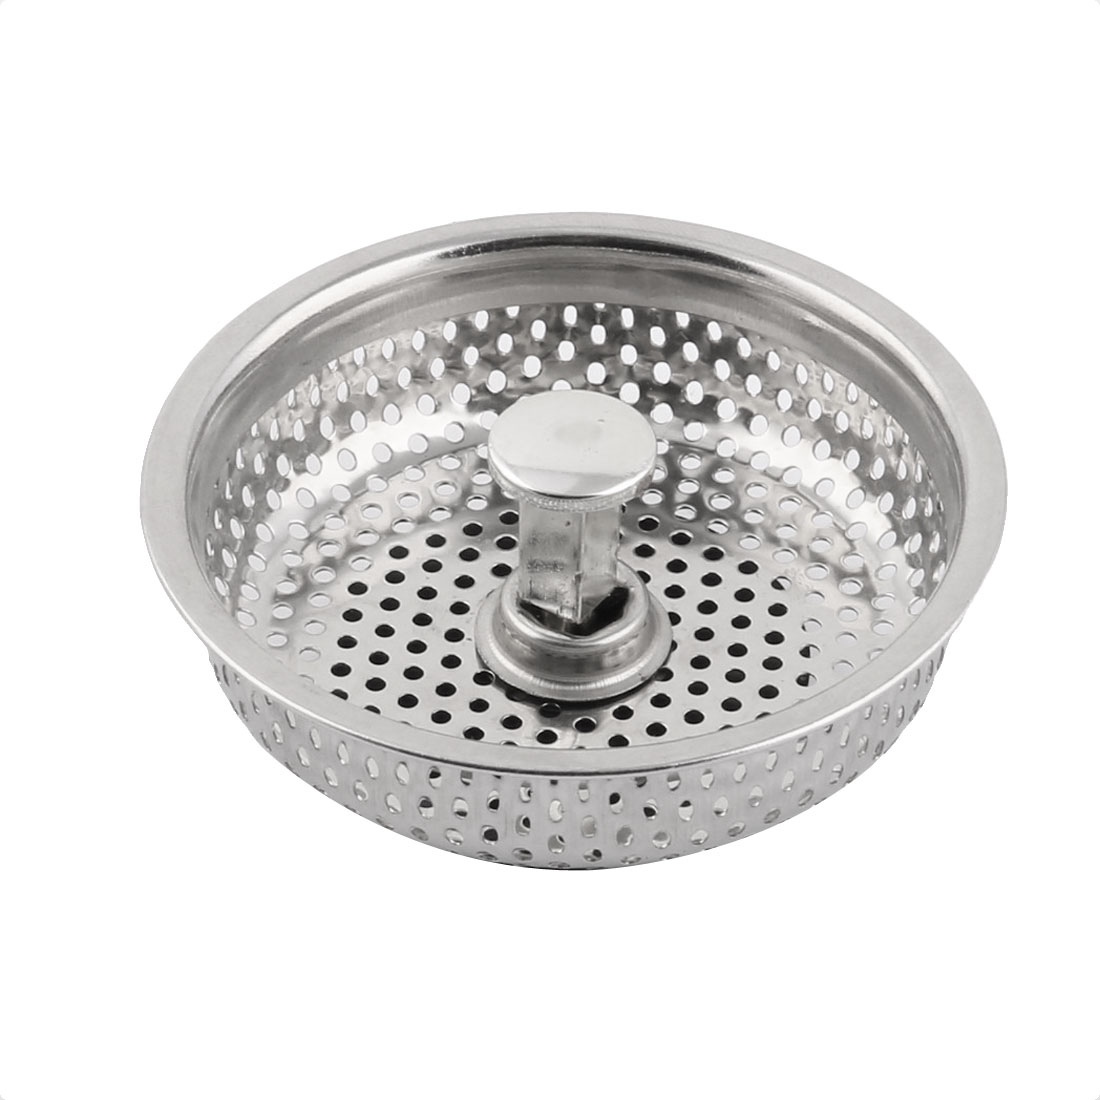 Kitchen Stainless Steel Basin Drain Plug Sink Strainer Filter Silver Tone Black